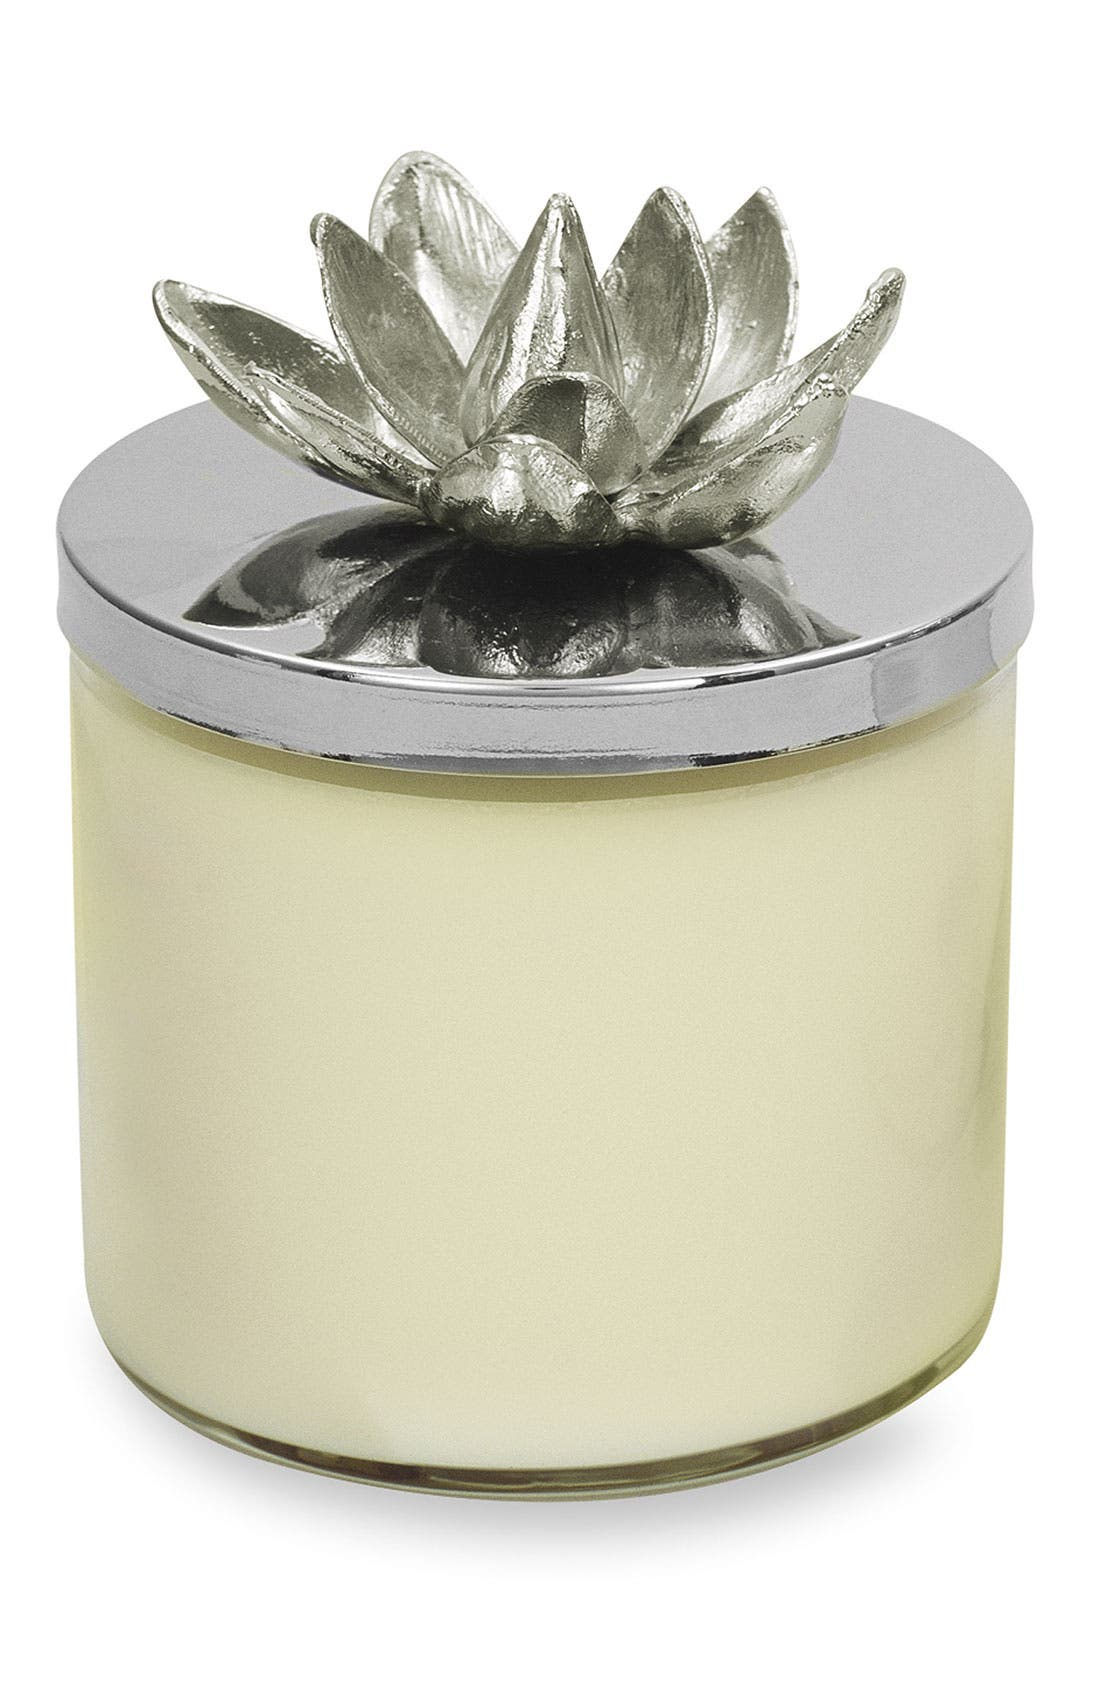 Alternate Image 1 Selected - Michael Aram 'Lotus Blossom' Soy Wax Candle